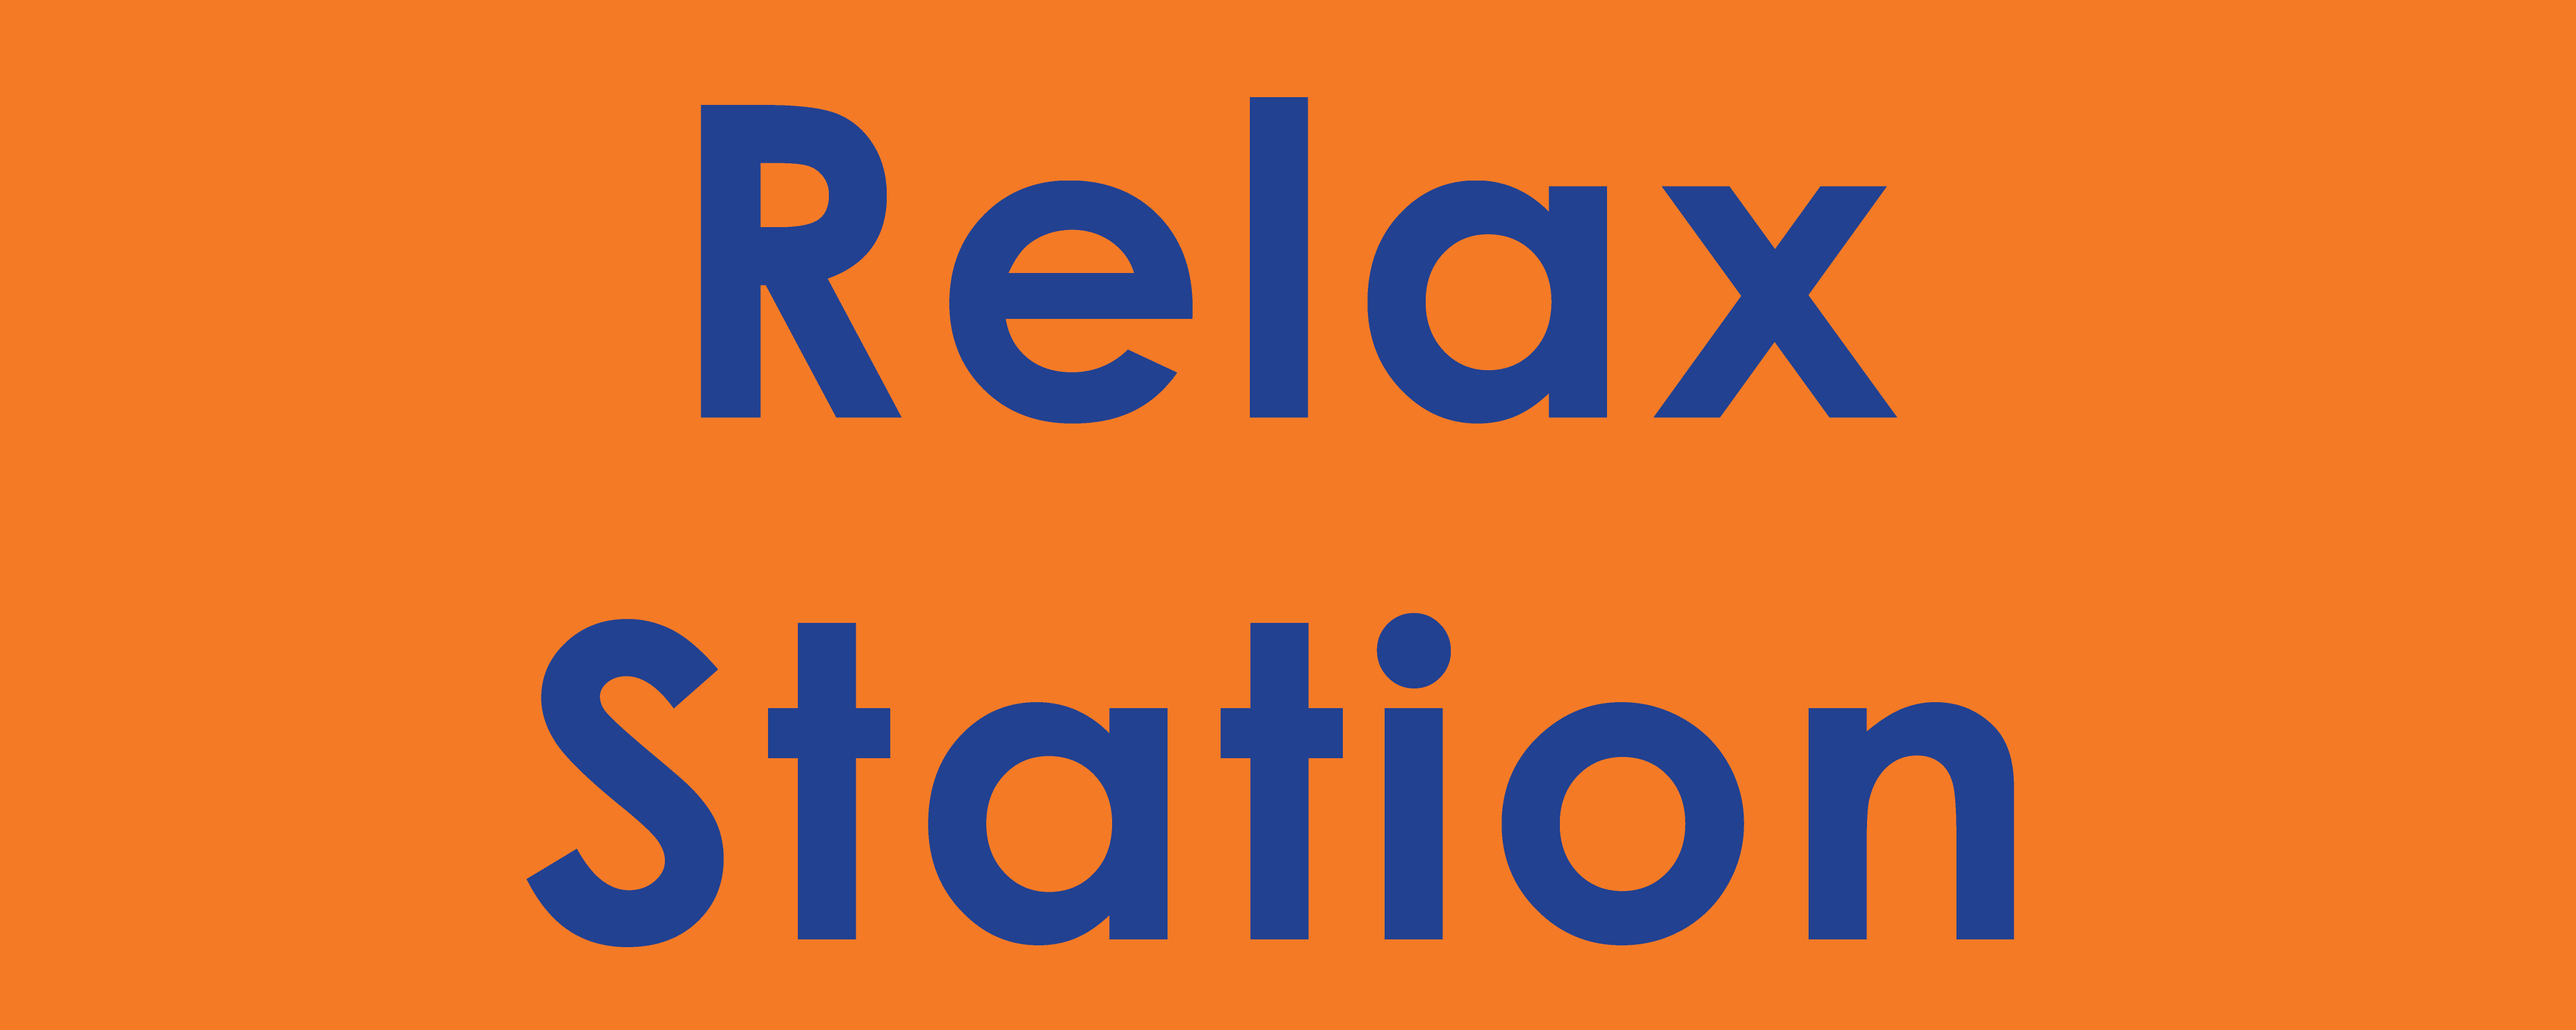 Relax Station Logo